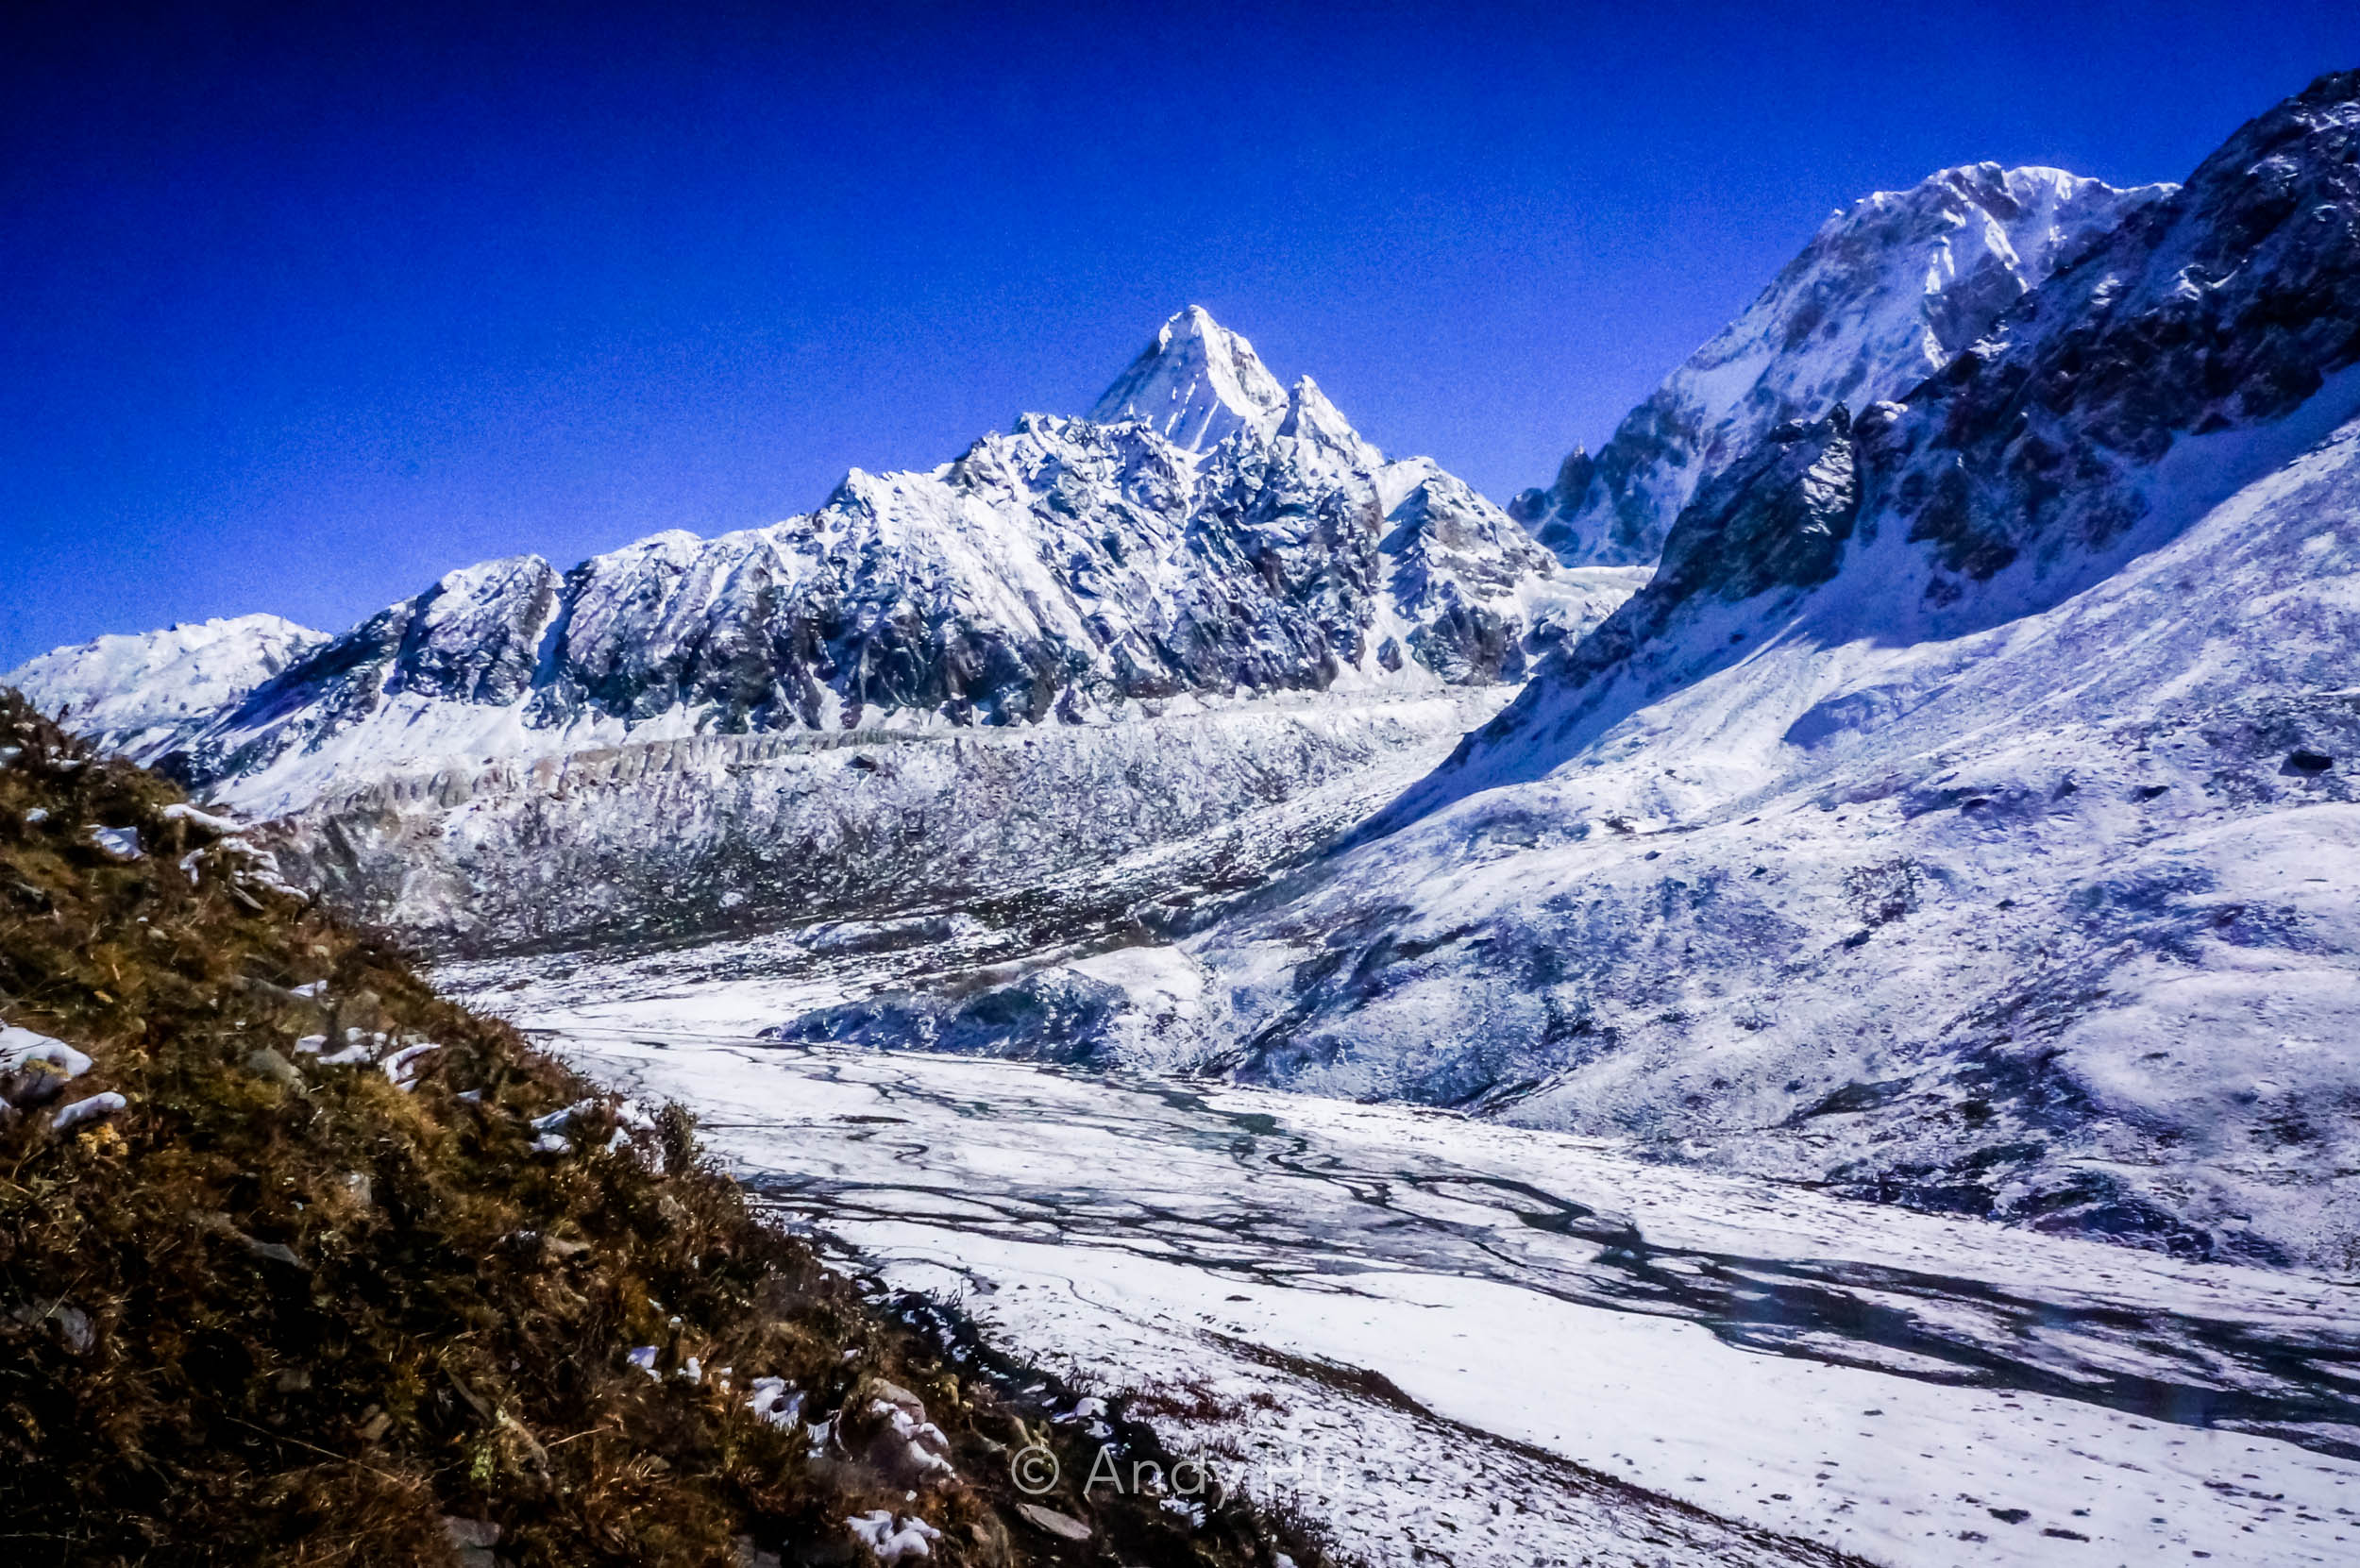 Snow-capped peaks and frozen river from Riwoche pass, day 2 Mt. Gongga Trek